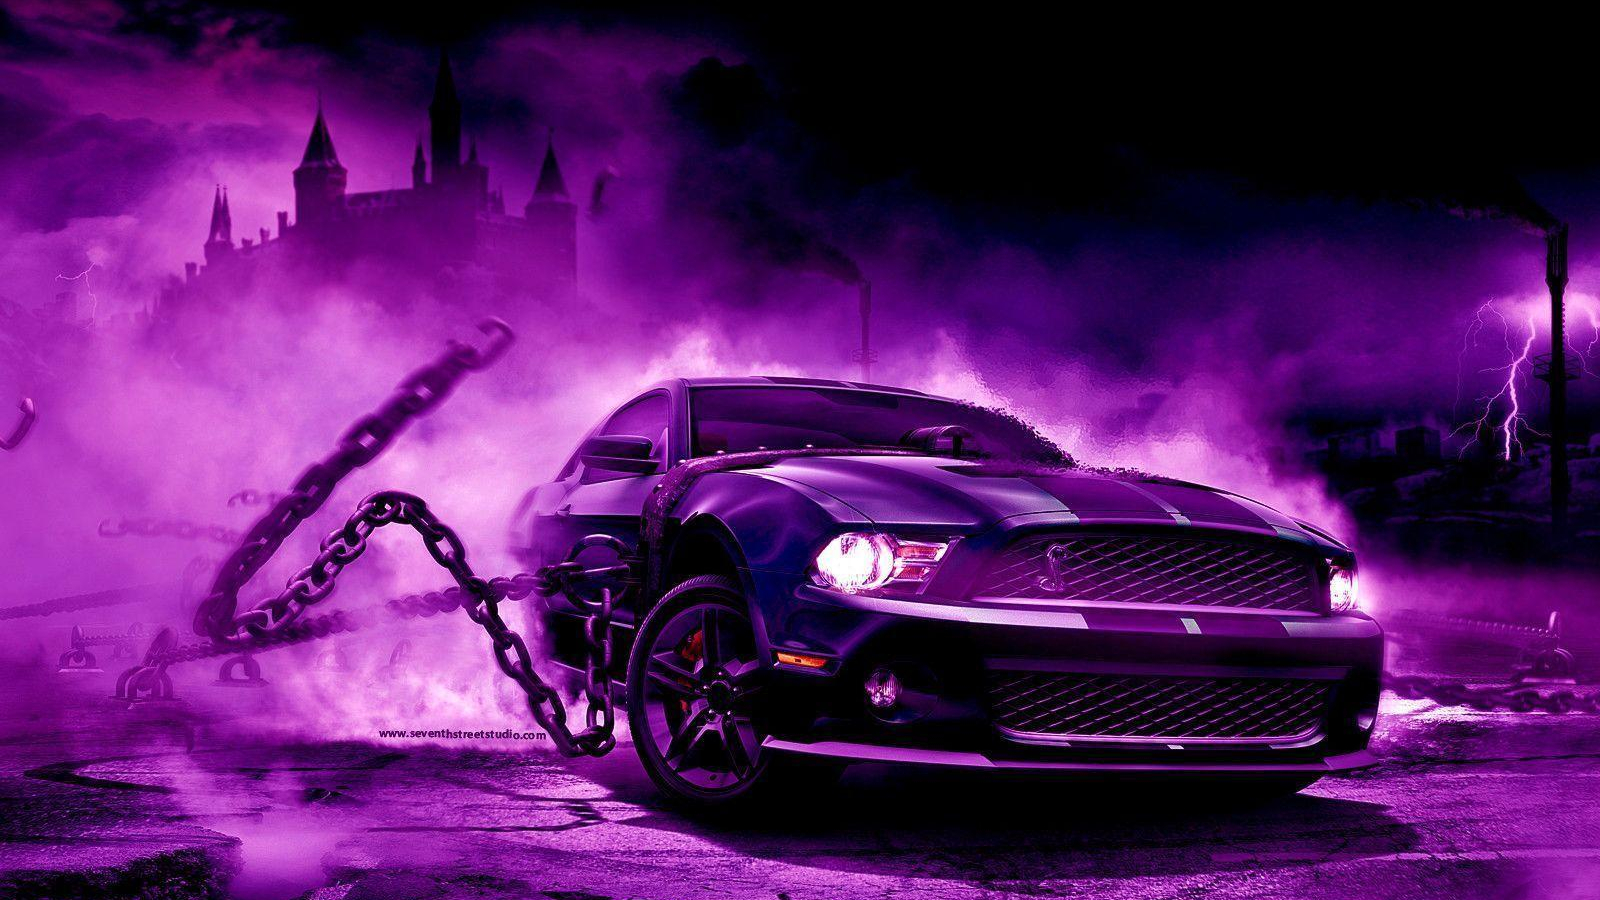 Free Download Cool Car Wallpapers 1600x1000 For Your Desktop Mobile Tablet Explore 78 Cool Car Wallpapers Beautiful Hd Wallpapers For Desktop Free Car Wallpapers For Desktop Cool Wallpapers